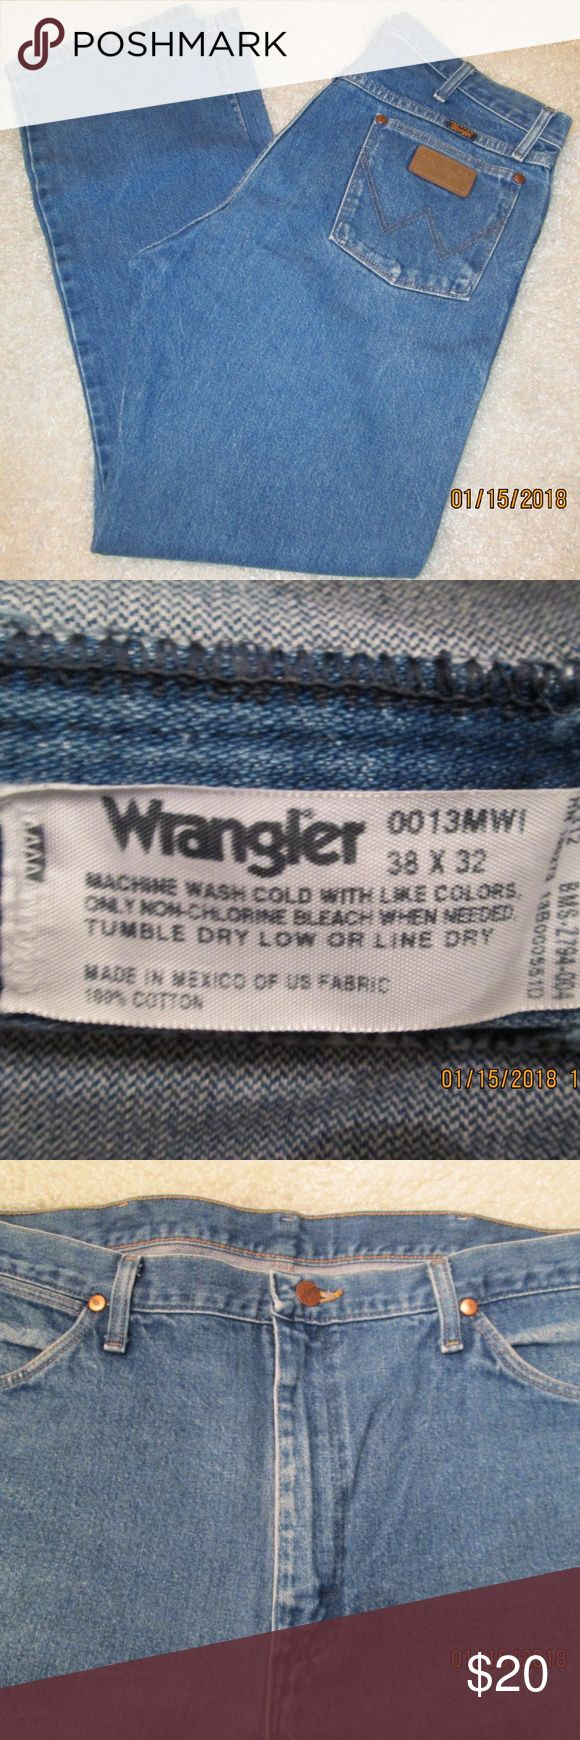 Wrangler Cowboy Cut Straight Leg Jeans 38x32 Wrangler Cowboy Cut Straight Leg Jeans  38x32 Medium Wash Indigo Style 0013MWI Front Closure Type: Zipper fly with button closure Straight Leg Fabric: 100% Cotton UPC 755107875364 Tag size 38x32 Excellent pre-owned condition from smoke and pet free home Wrangler Jeans Straight